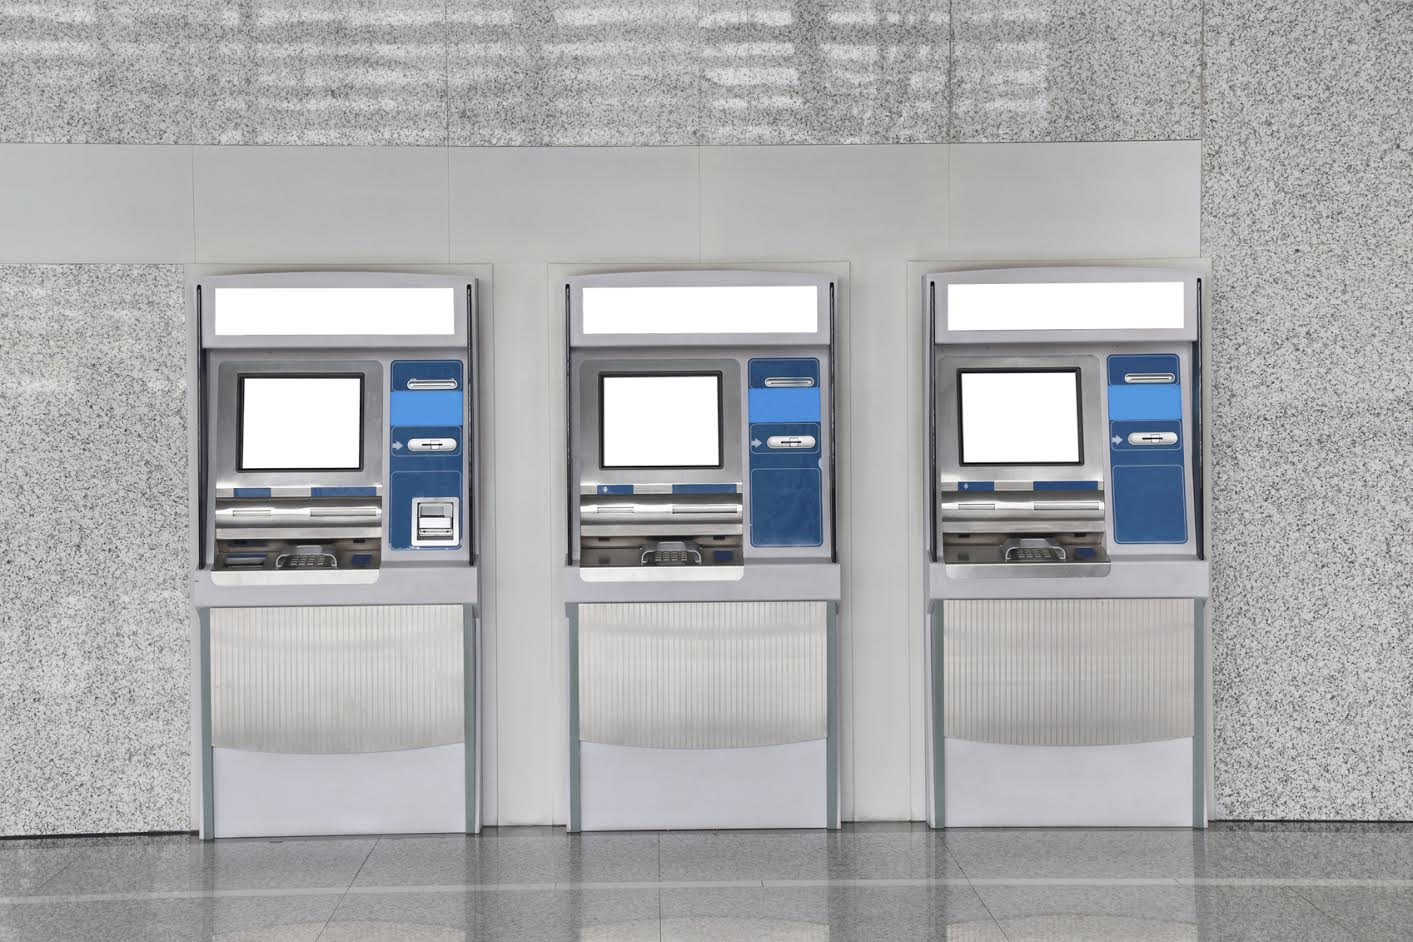 Hacker group Cobalt hits ATM's across Europe in smash and grab operations